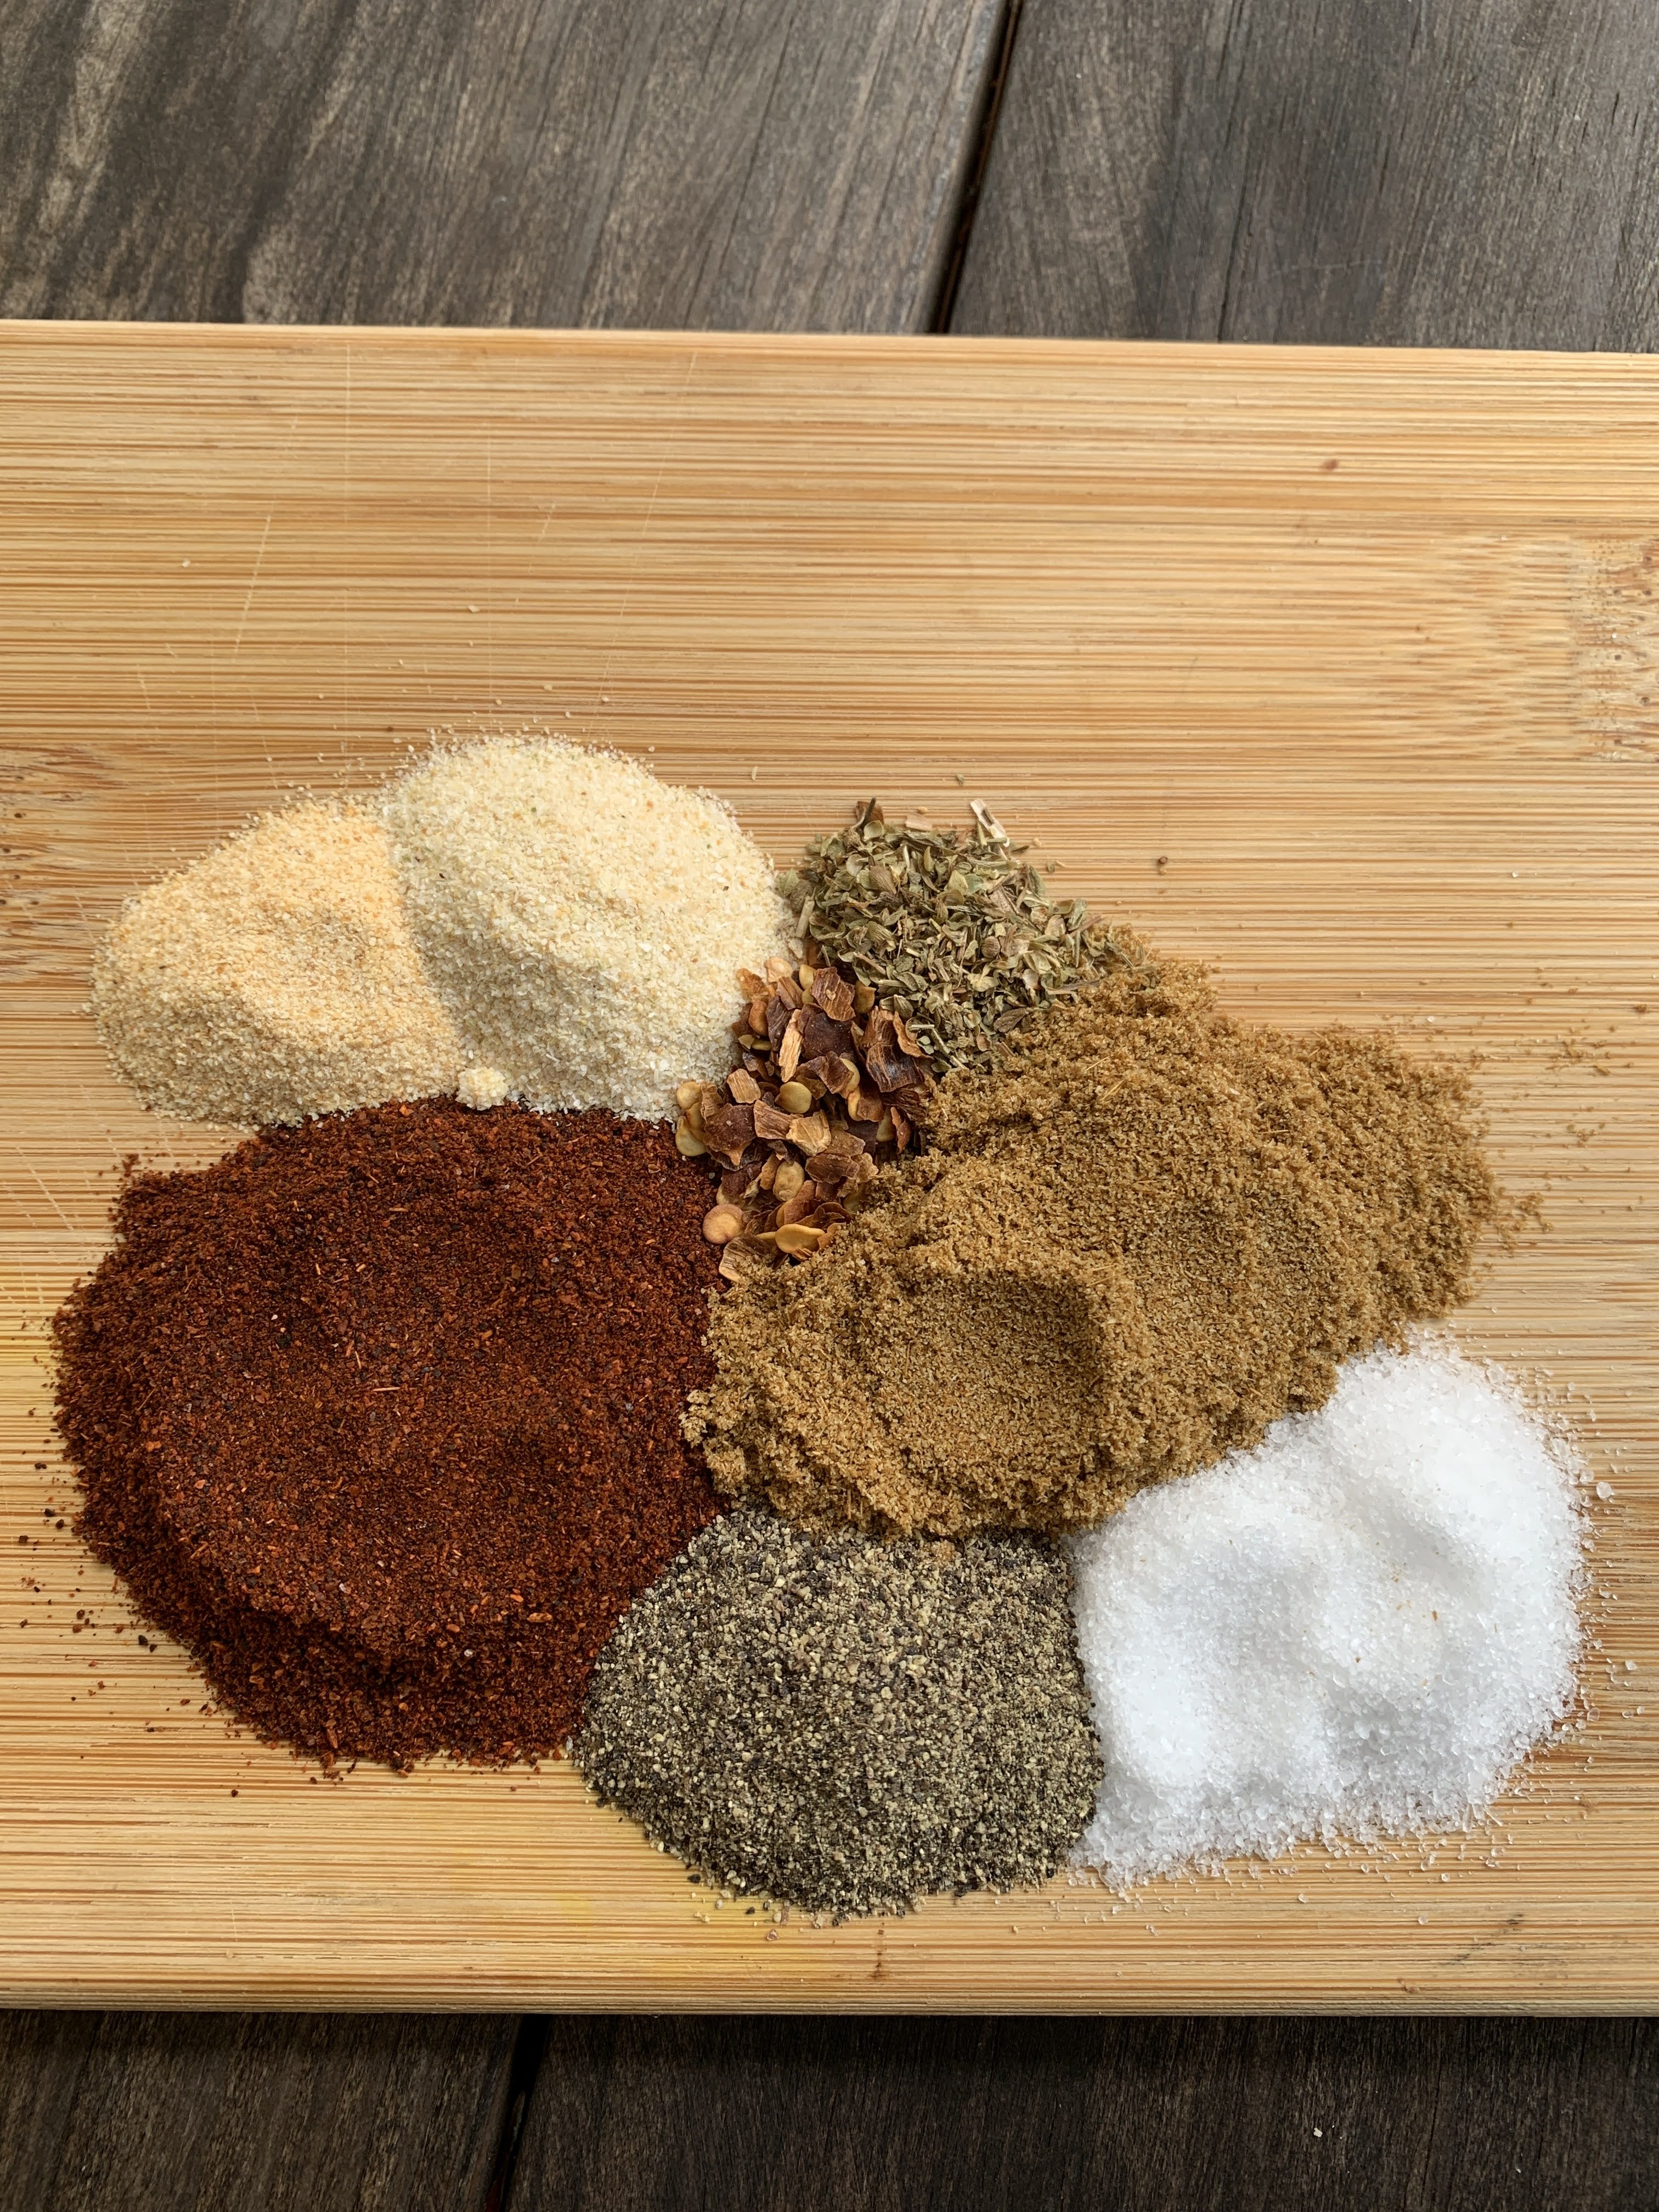 spices separated in piles on a wooden cutting board